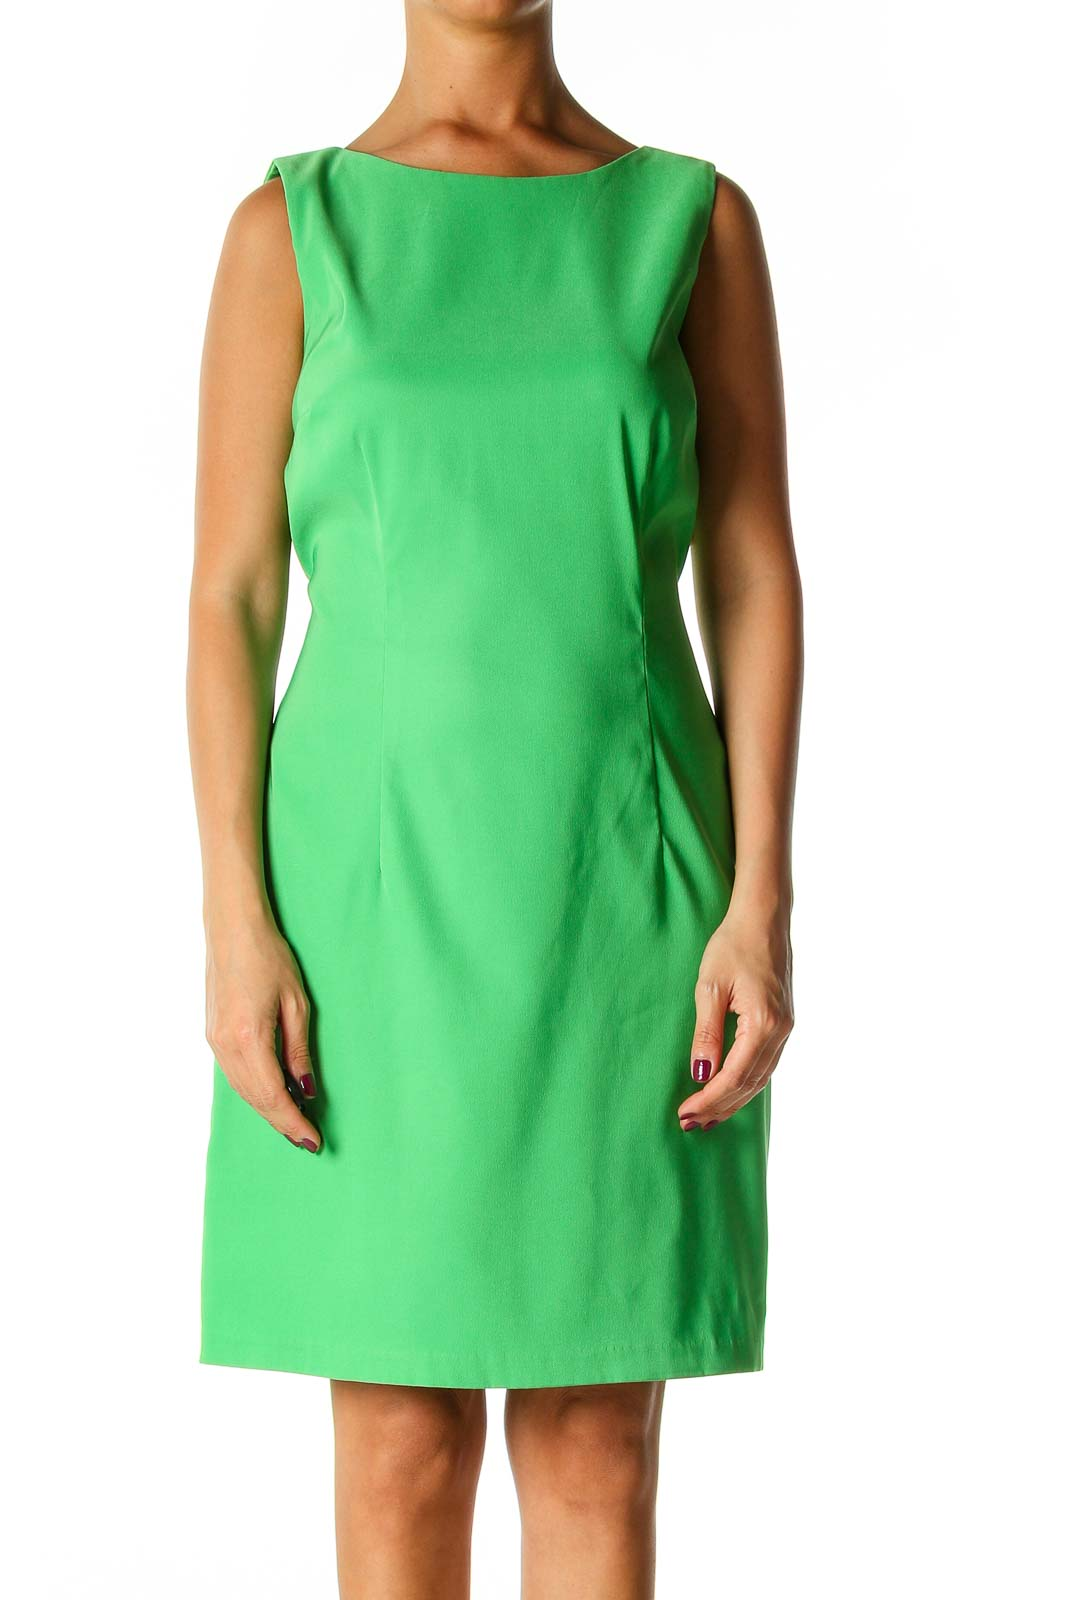 Green Solid Casual Shift Dress Front